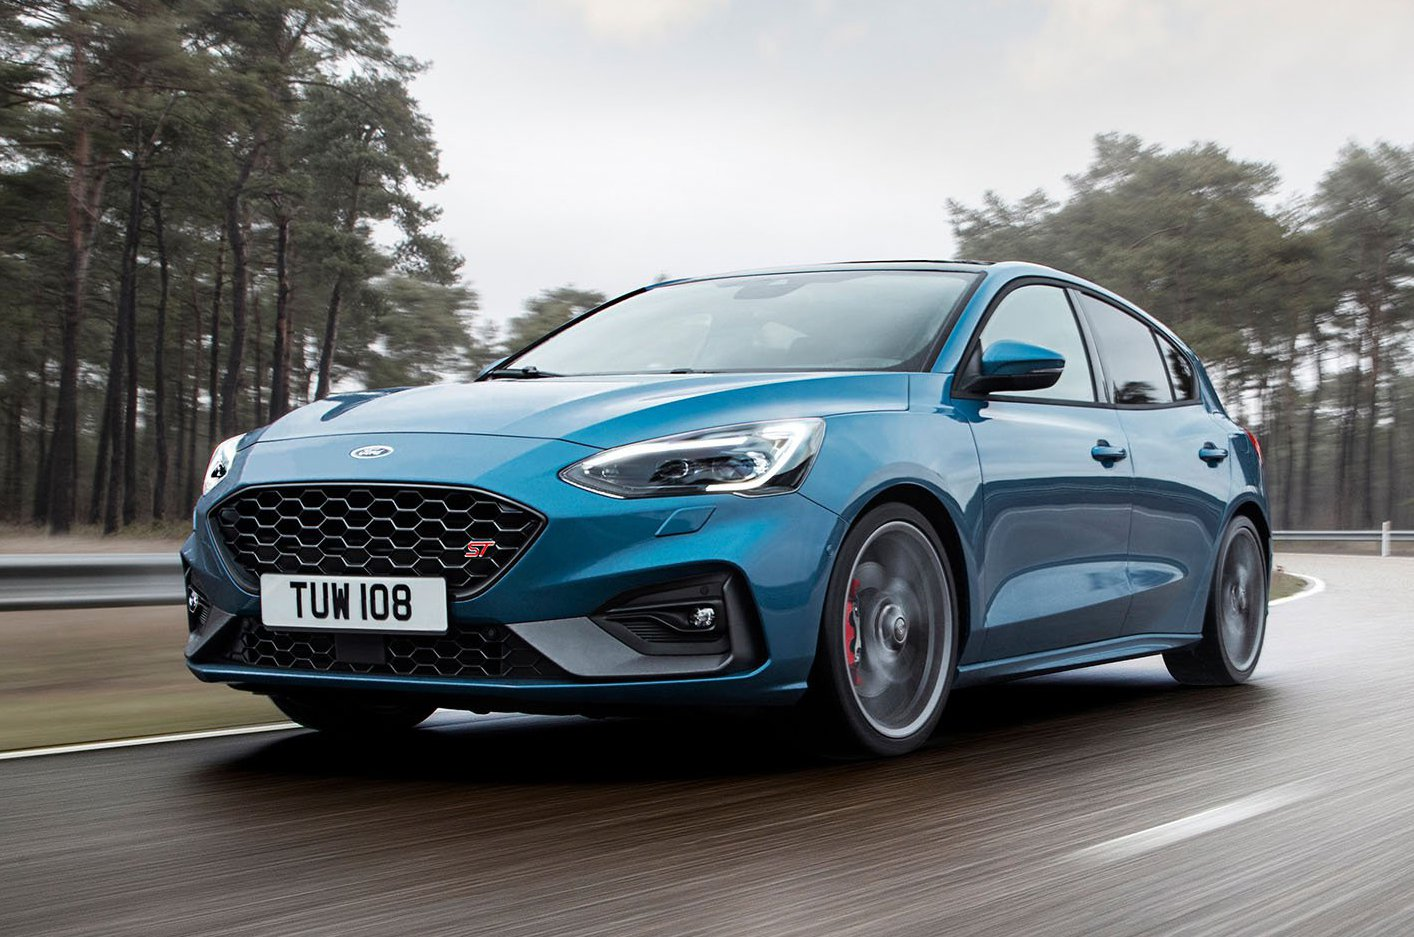 2019 Ford Focus St Front